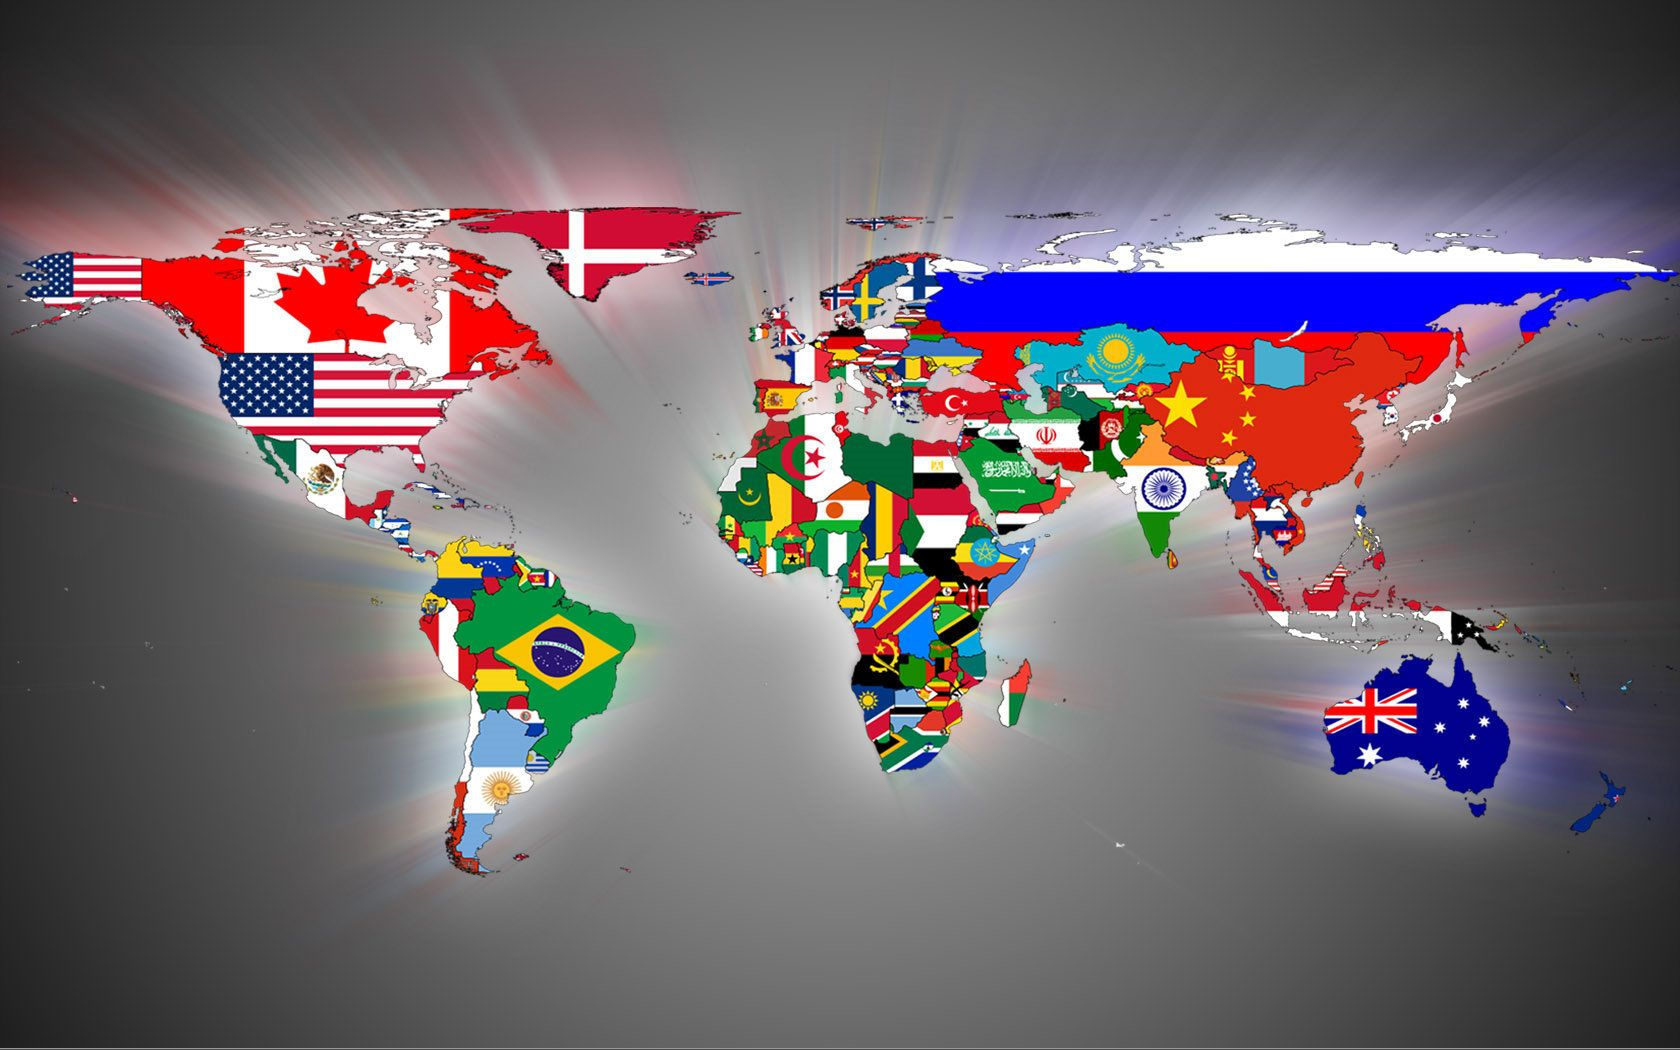 Do you have concerns about your adoption if you were adopted from world map flags wide wallpaper wide desktop wallpaper world map flags wide wallpaper wide background world map flags wide wallpaper wide hd wallpaper gumiabroncs Gallery